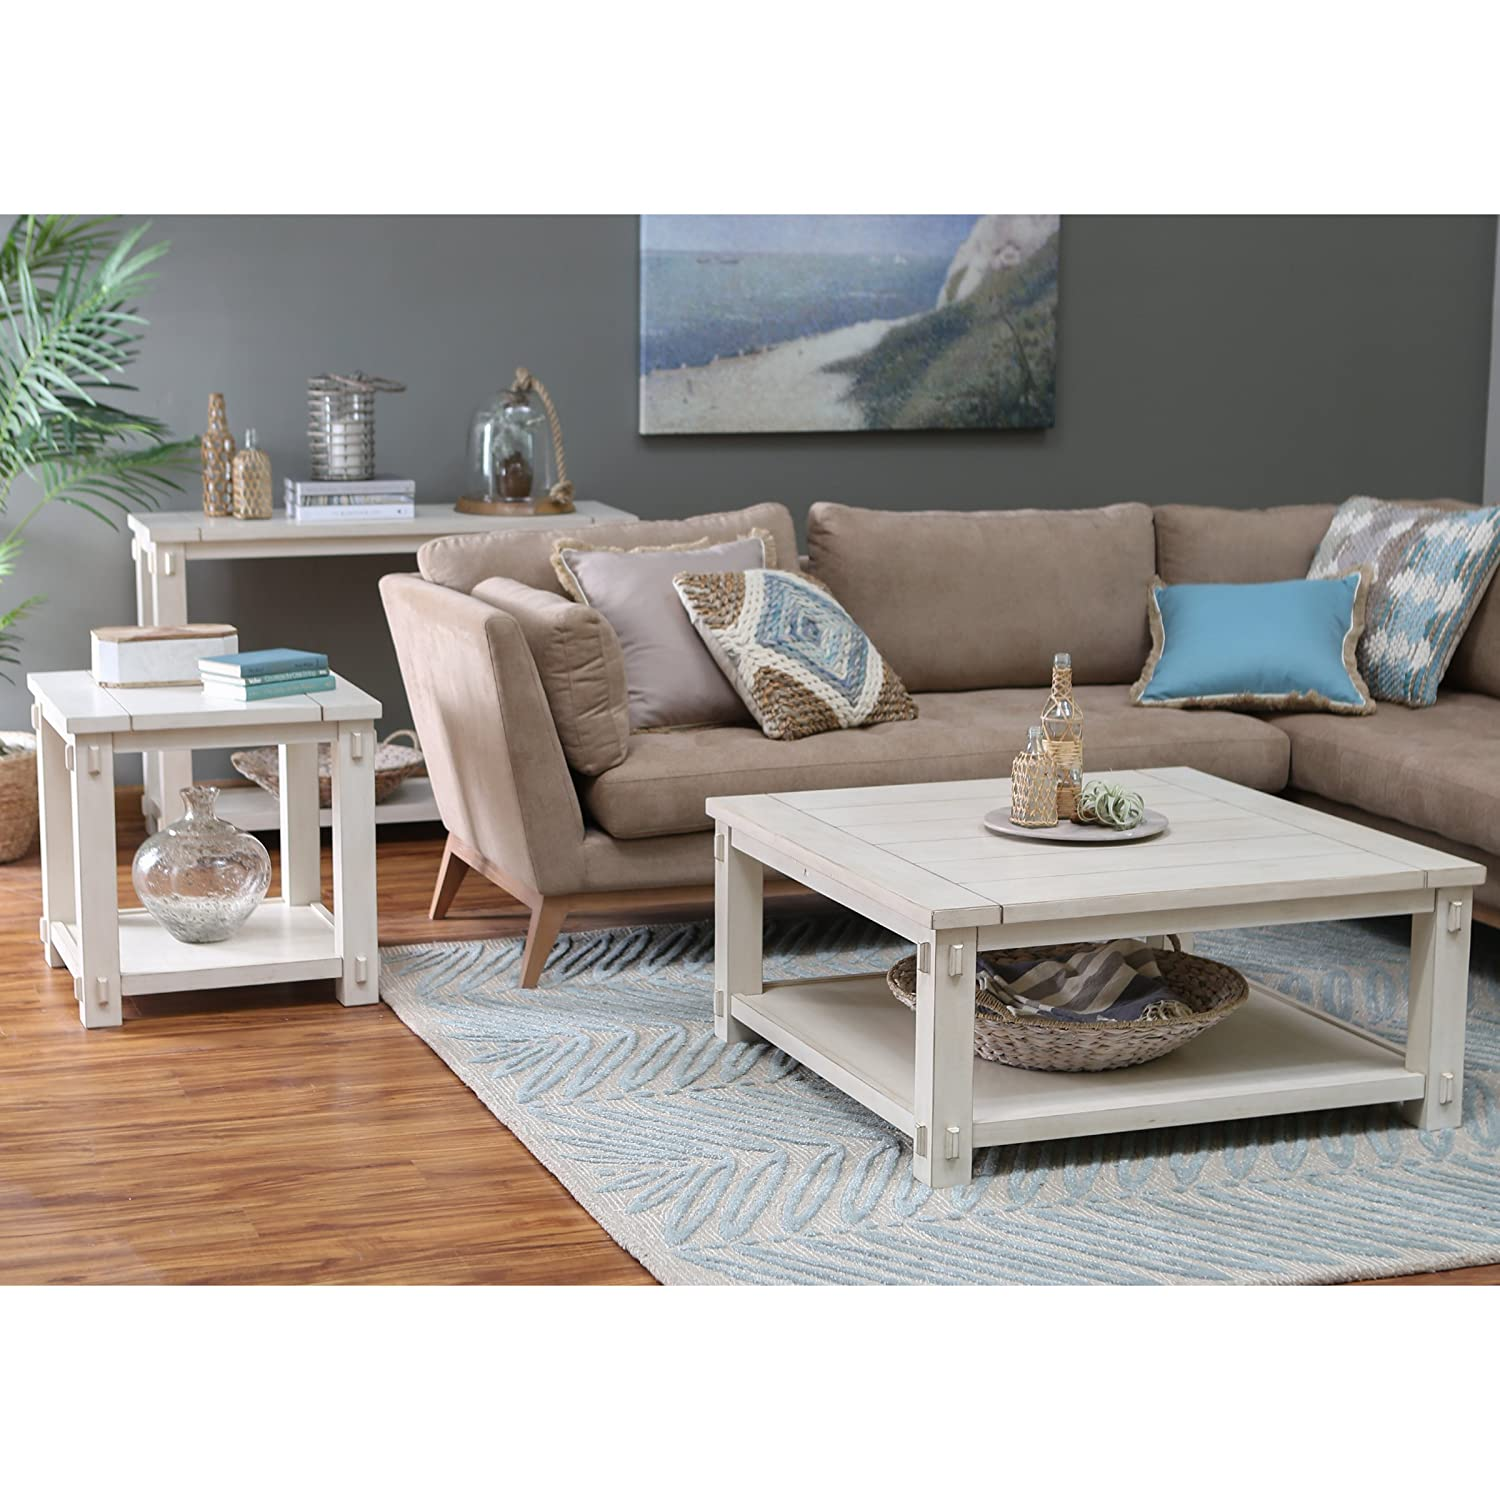 Amazon Craftsman Wood Top Westcott Square Coffee Table